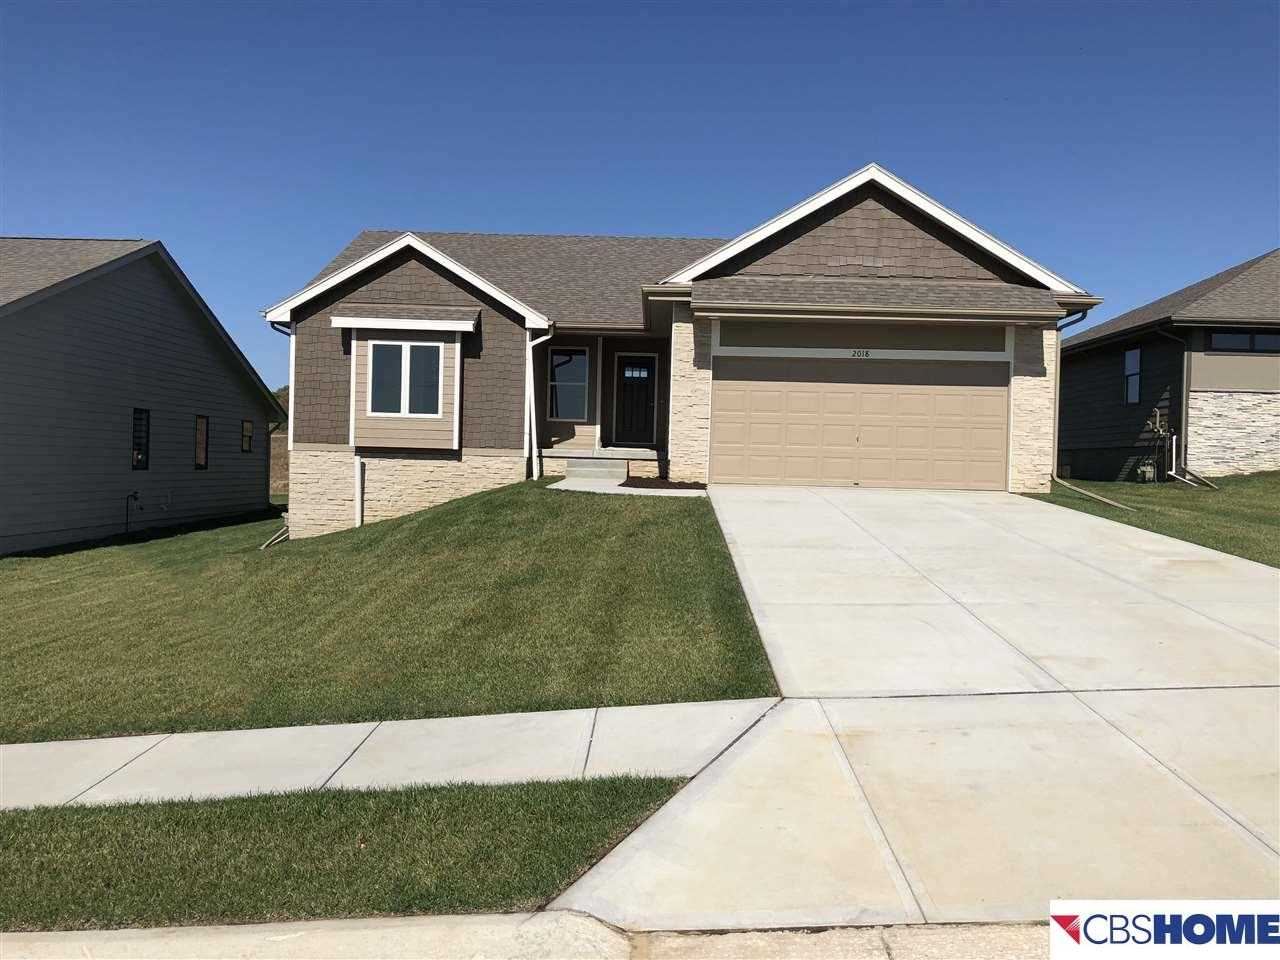 2018 Gindy Bellevue, NE 68147 | MLS 21800298 Photo 1